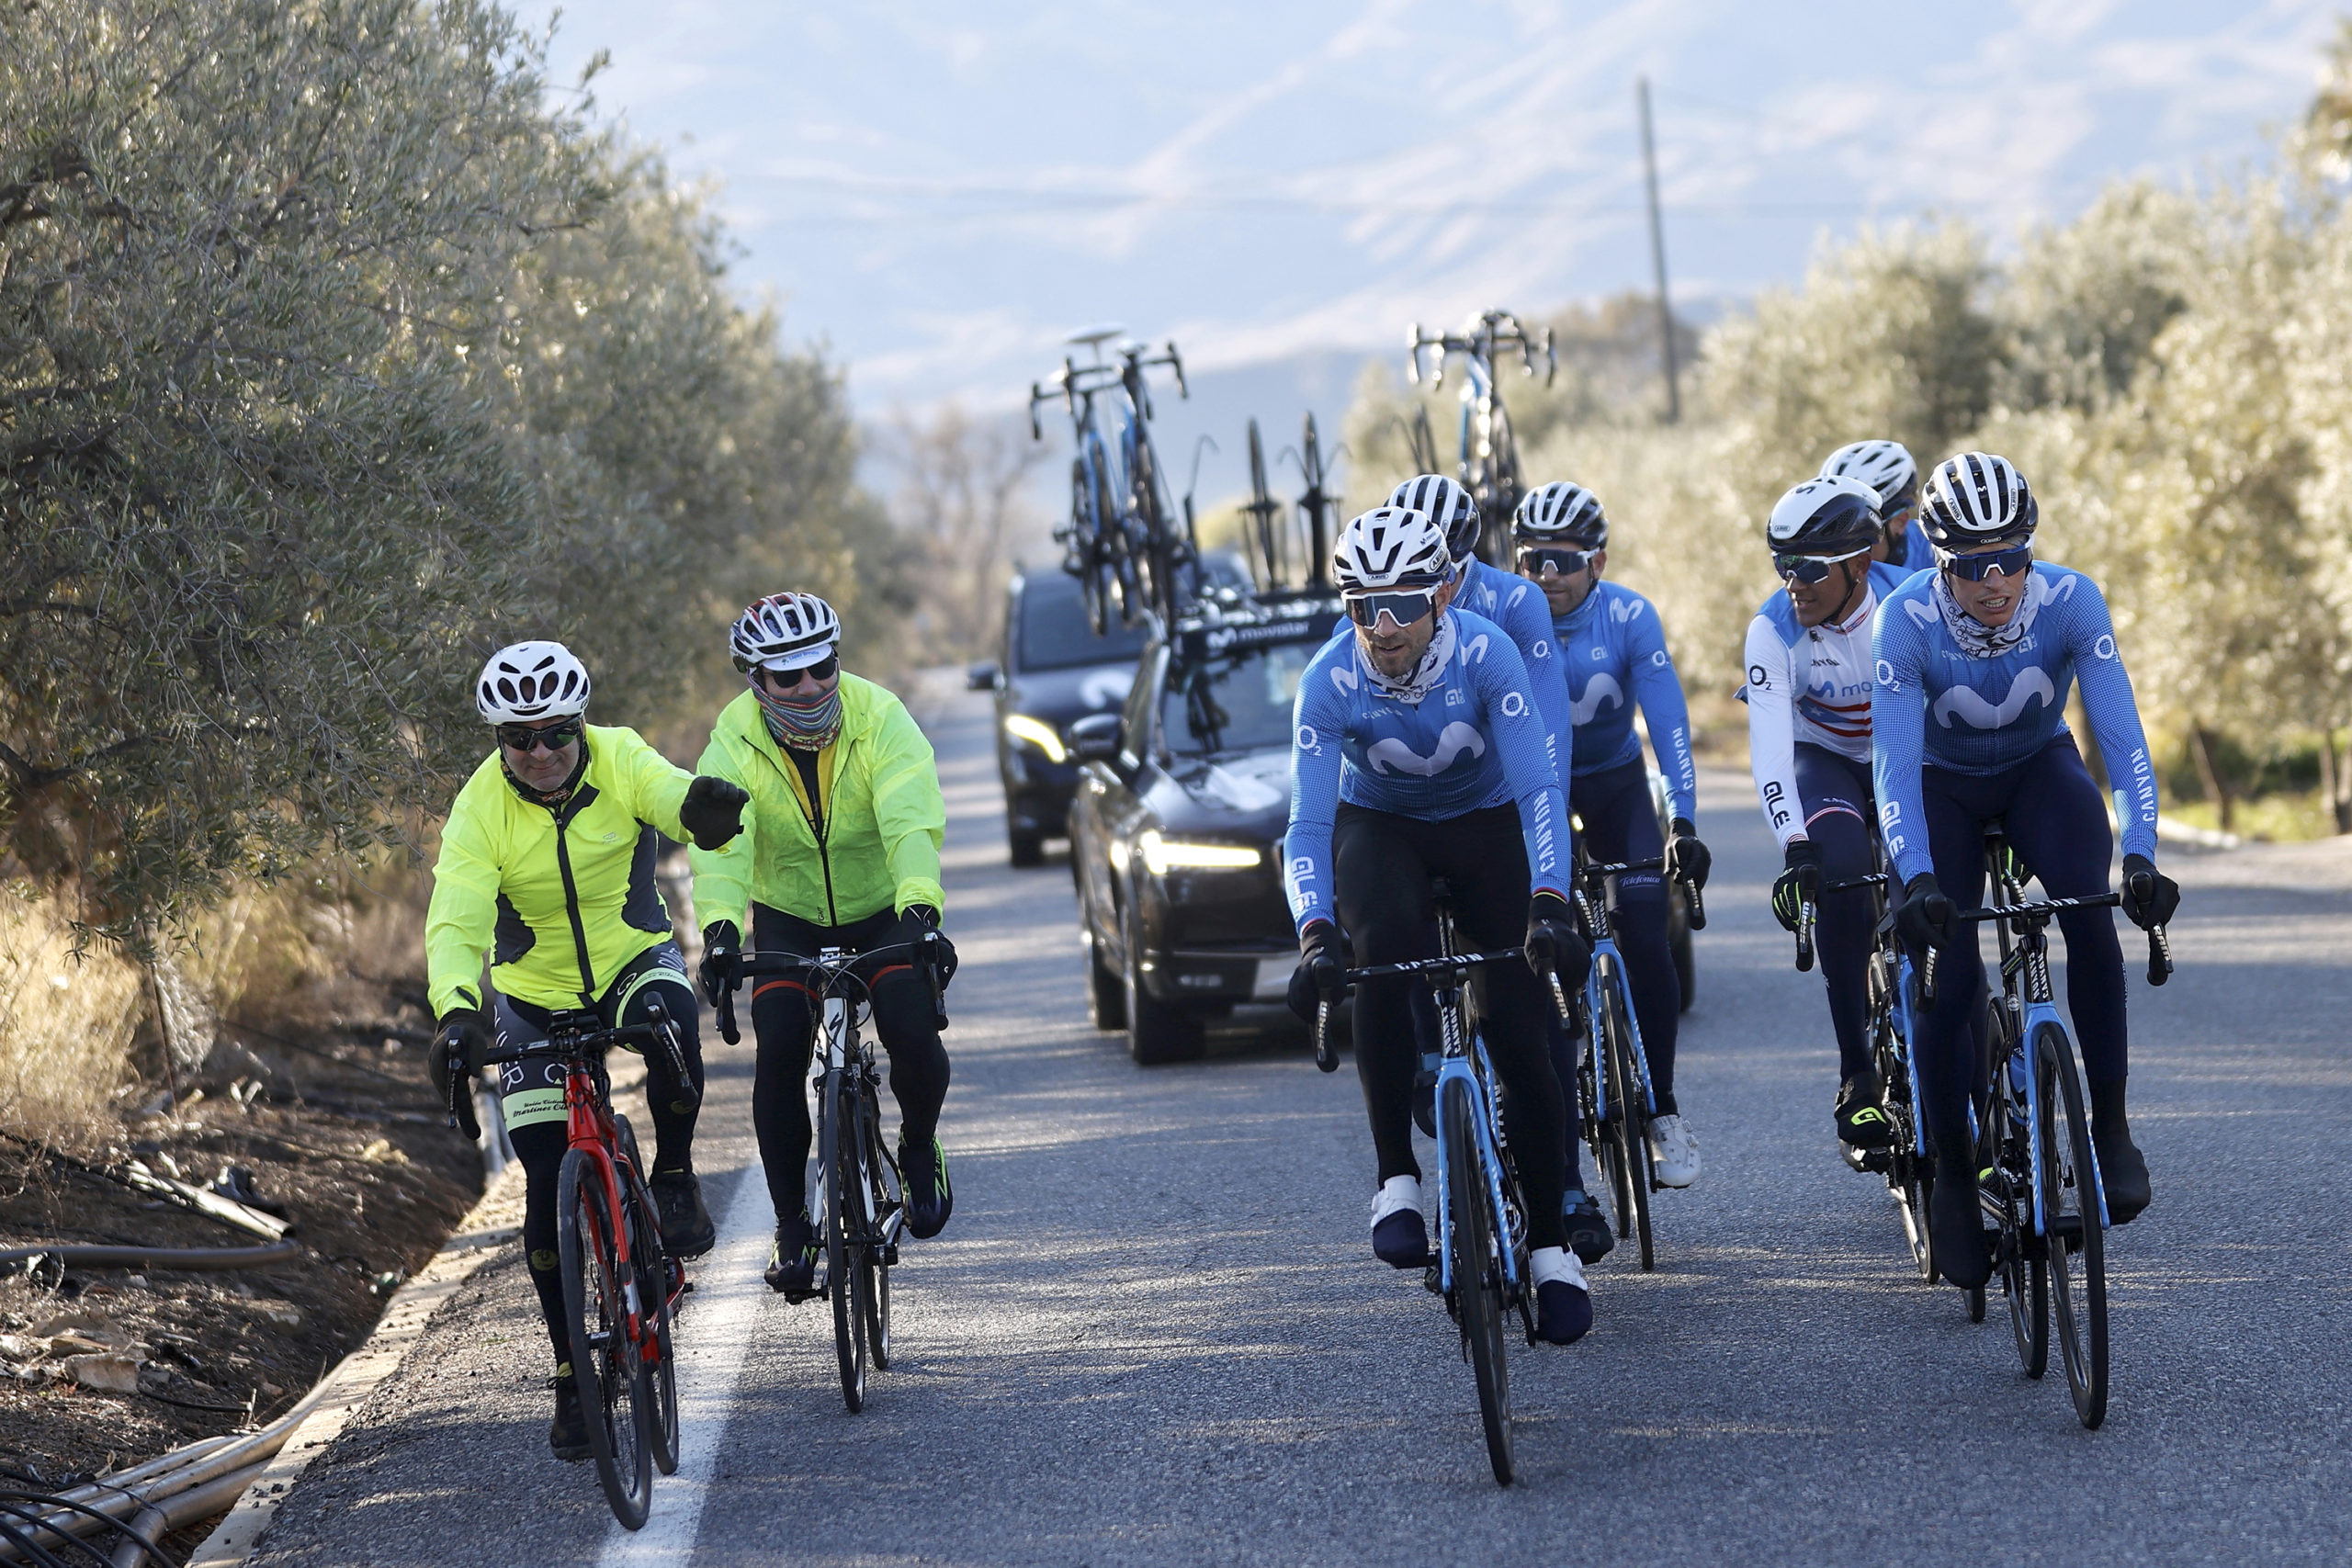 El Movistar Team se prepara para el inicio de temporada (Photo Gomez Sport.)